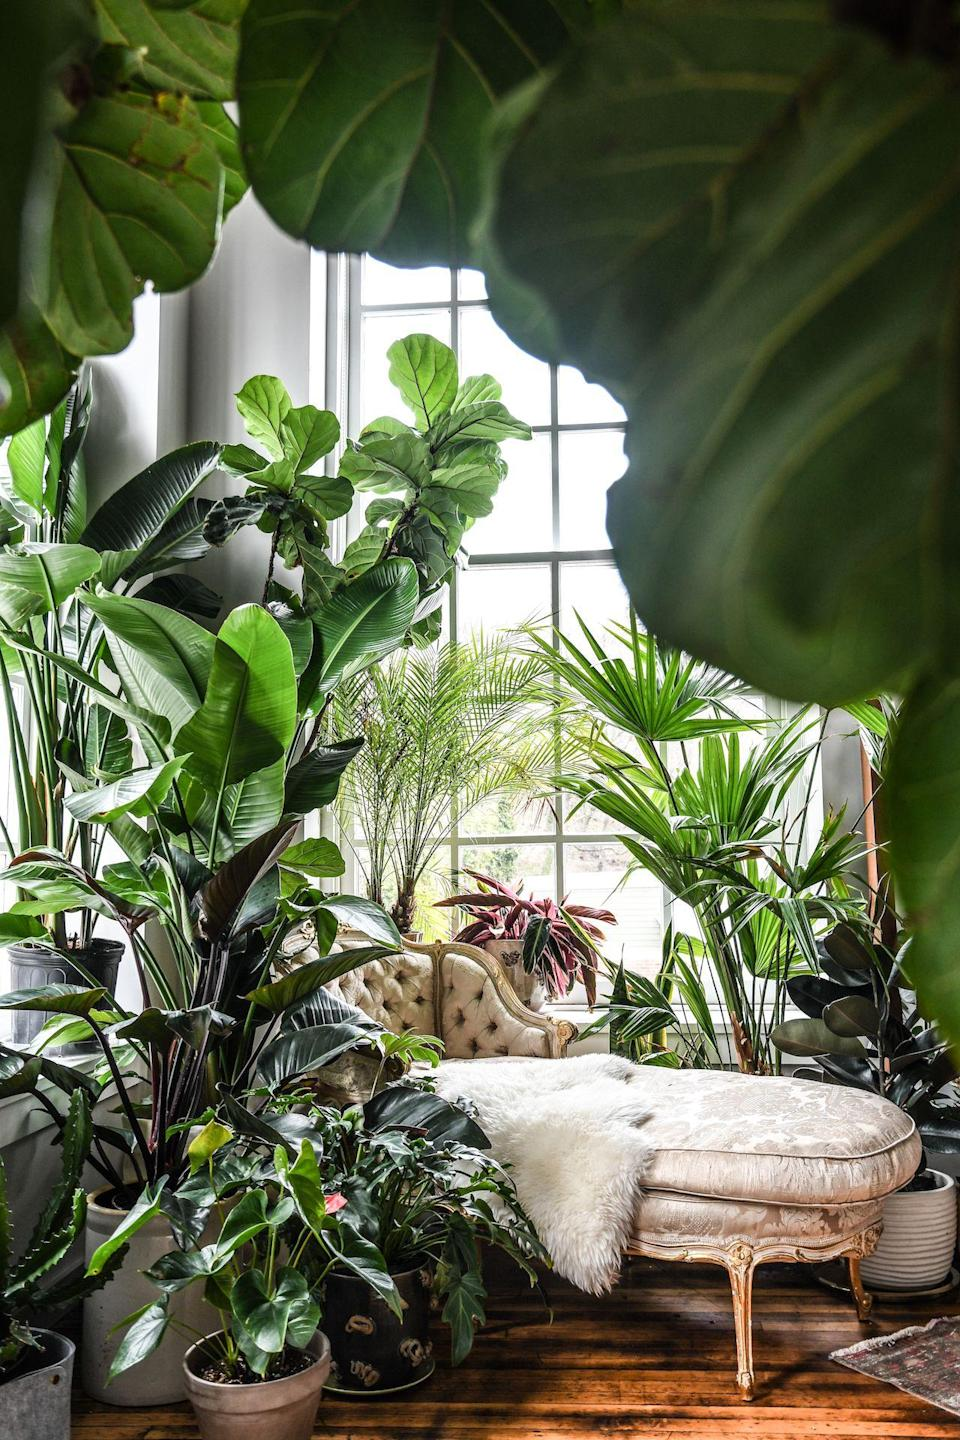 """<p>Living in a small apartment and being a gardening enthusiast were once mutually exclusive. The too-often <a href=""""https://www.elledecor.com/design-decorate/room-ideas/g3464/how-to-brighten-a-dark-room/"""" rel=""""nofollow noopener"""" target=""""_blank"""" data-ylk=""""slk:dark"""" class=""""link rapid-noclick-resp"""">dark</a>, damp, or overly dry environments are not exactly the most ideal for those looking to turn their living room into a makeshift greenhouse. However, this no longer needs to be the case, as there is a wide array of plant species that are actually perfectly suited for surviving—and even thriving—in less-than-tropical conditions. So we at <em>ELLE Decor</em> tapped Baltimore-based plant stylist <a href=""""https://thingsbyhc.com/"""" rel=""""nofollow noopener"""" target=""""_blank"""" data-ylk=""""slk:Hilton Carter"""" class=""""link rapid-noclick-resp"""">Hilton Carter</a>, author of last year's <a href=""""https://www.amazon.com/Wild-Interiors-Beautiful-plants-beautiful/dp/1782498753"""" rel=""""nofollow noopener"""" target=""""_blank"""" data-ylk=""""slk:Wild Interiors"""" class=""""link rapid-noclick-resp""""><em>Wild Interiors</em></a><em>,</em> to recommend the best indoor apartment <a href=""""https://www.elledecor.com/shopping/best-stores/g19574855/buy-plants-online/"""" rel=""""nofollow noopener"""" target=""""_blank"""" data-ylk=""""slk:plants that you can buy online"""" class=""""link rapid-noclick-resp"""">plants that you can buy online</a>, and also to tell you how to care for them once they're all yours. Read on for his top picks, as well as some of our own.<br></p>"""